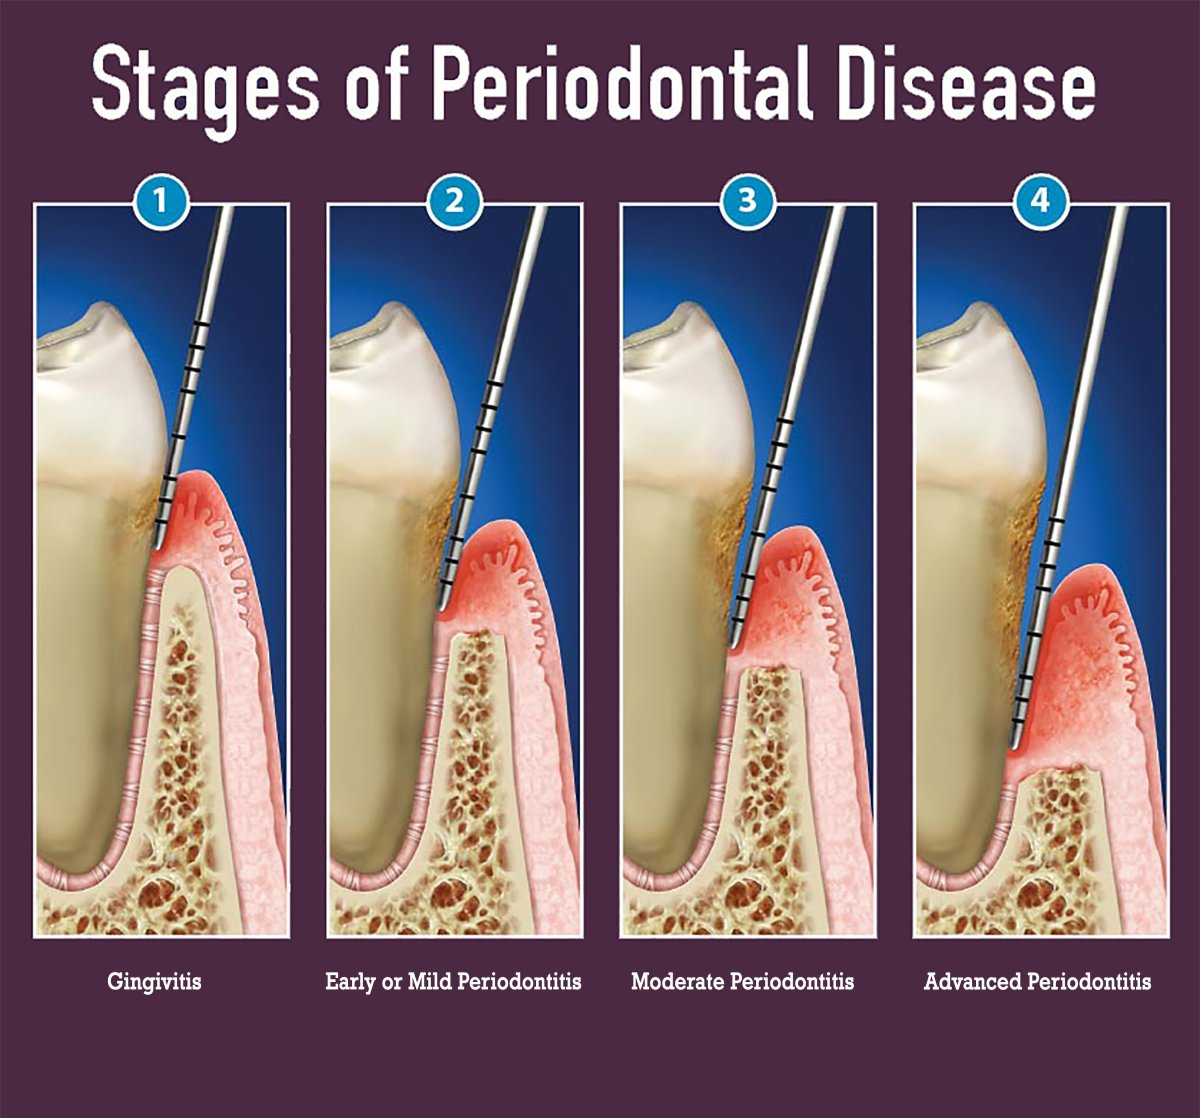 image-773501-graphic-2-stages-of-periodontitis.jpg